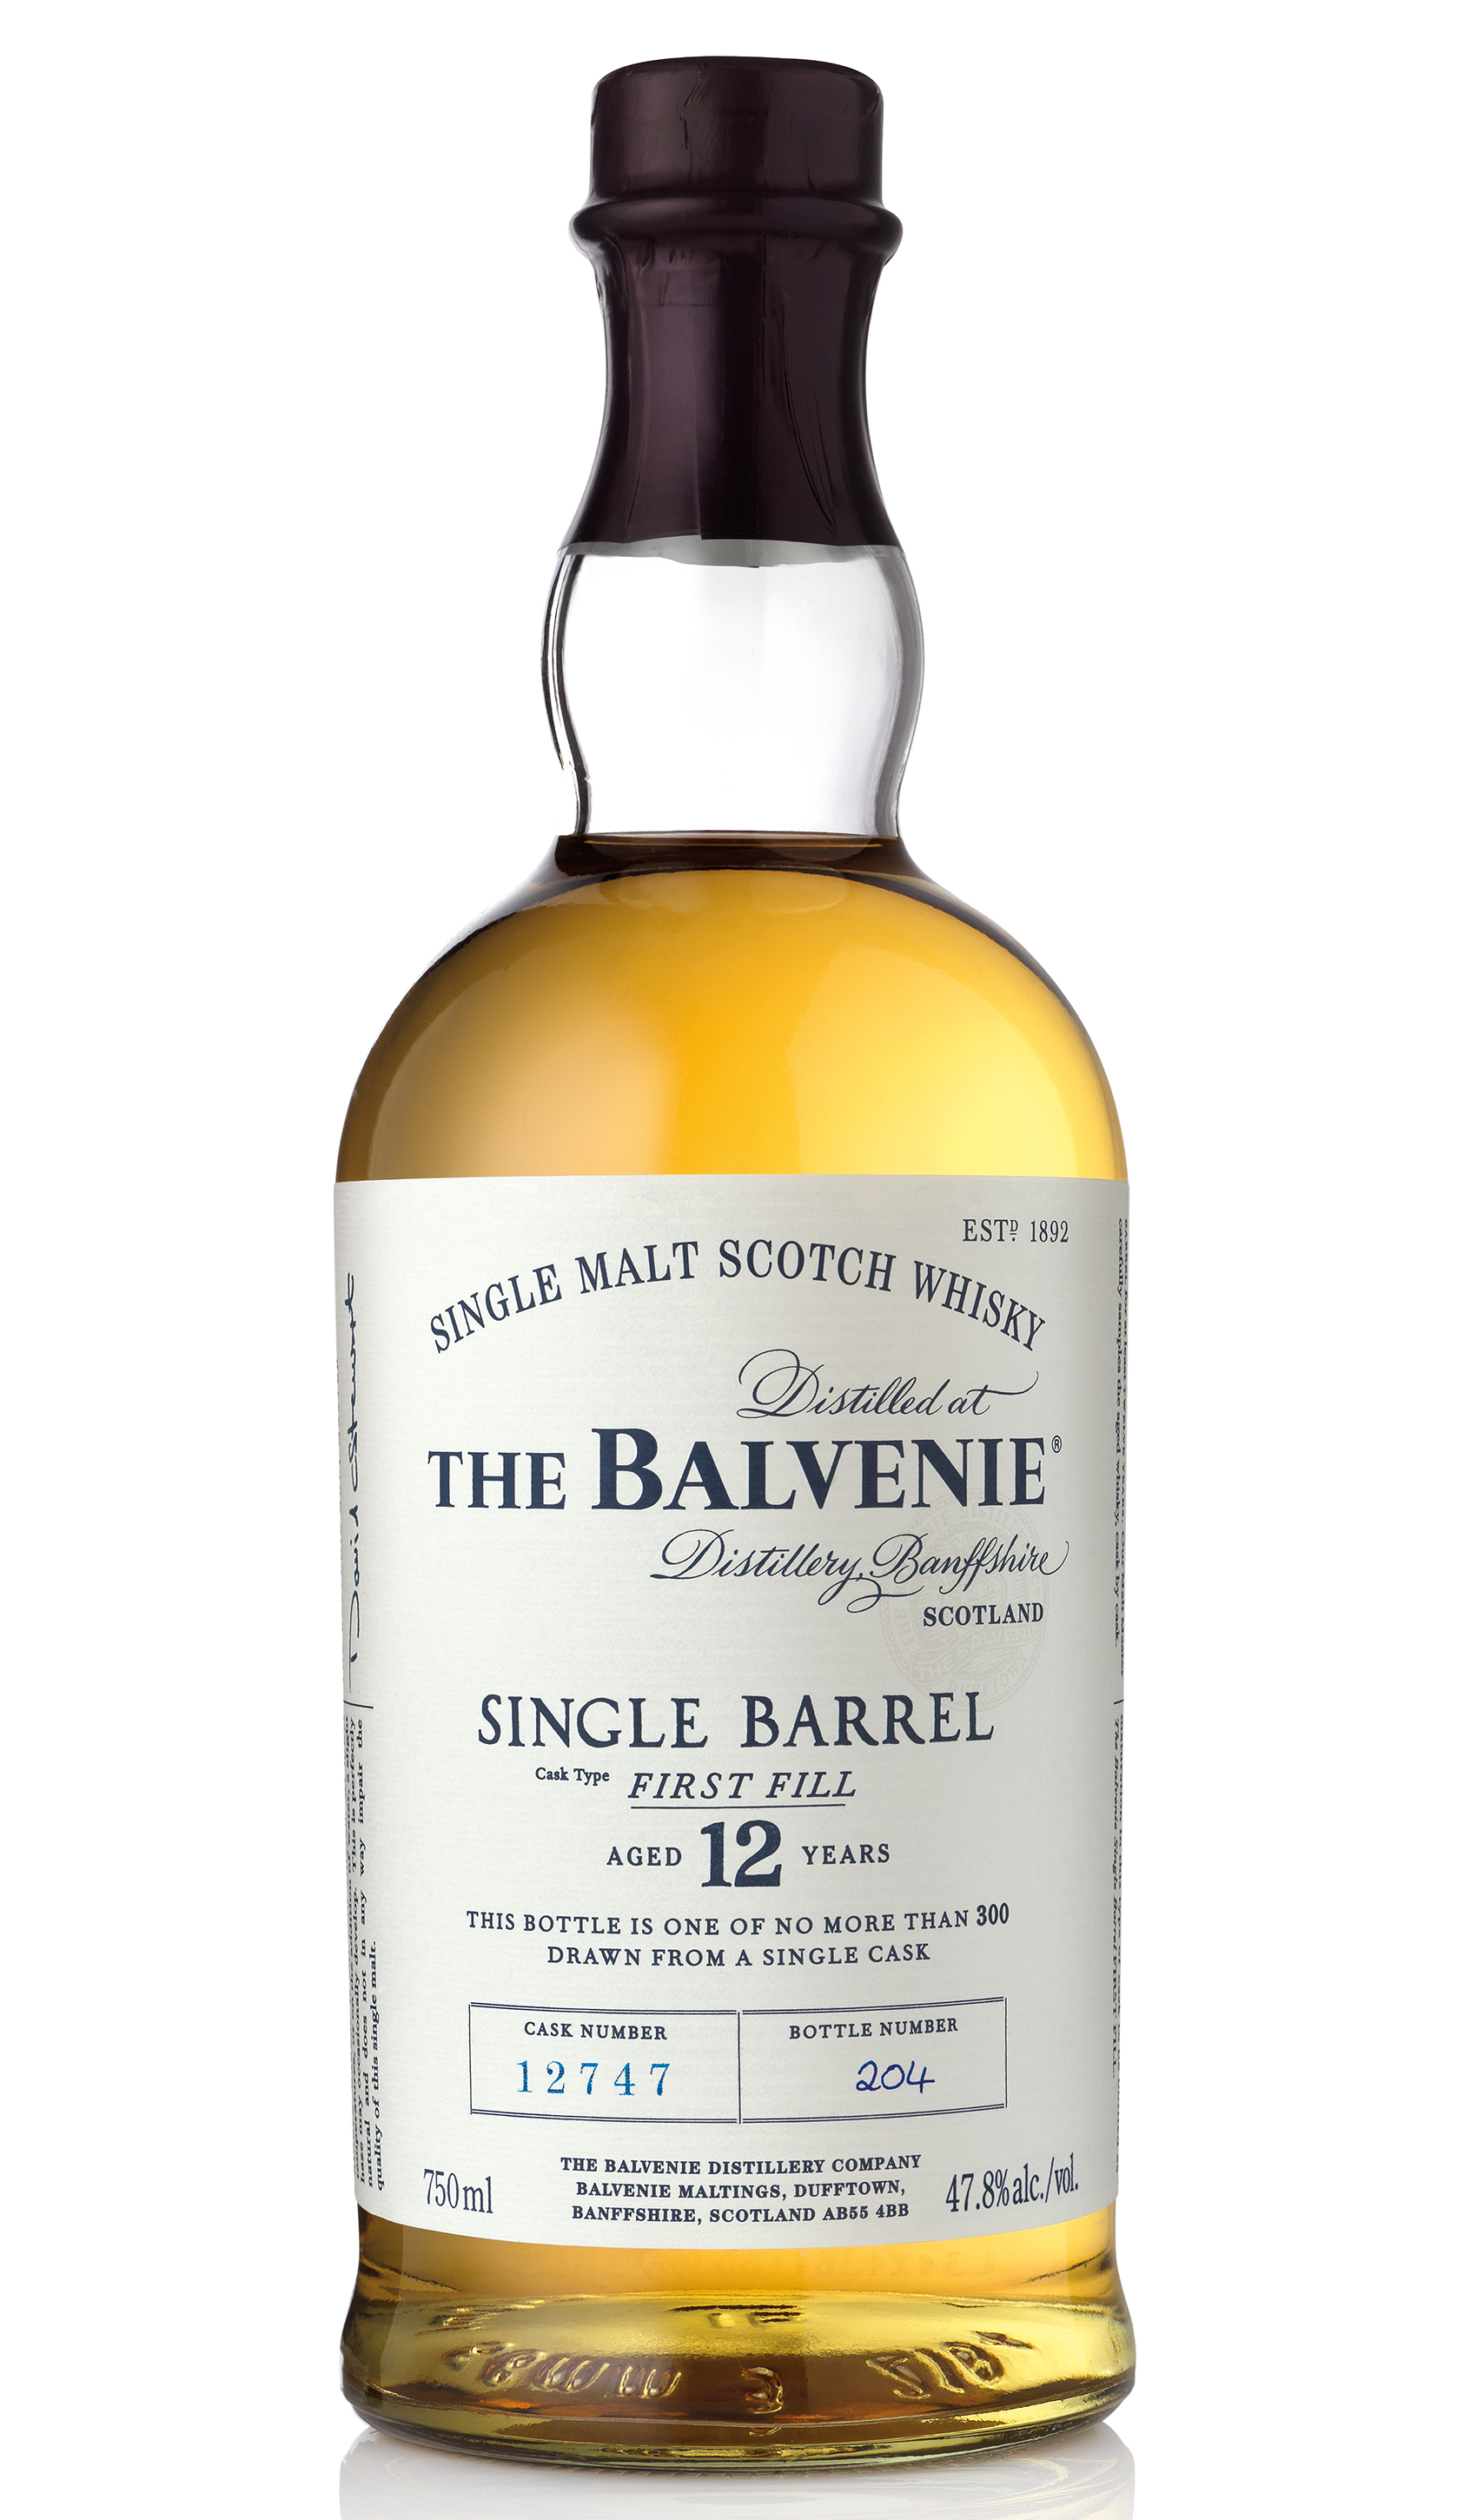 Single Barrel First Fill 12 Years, The Balvenie